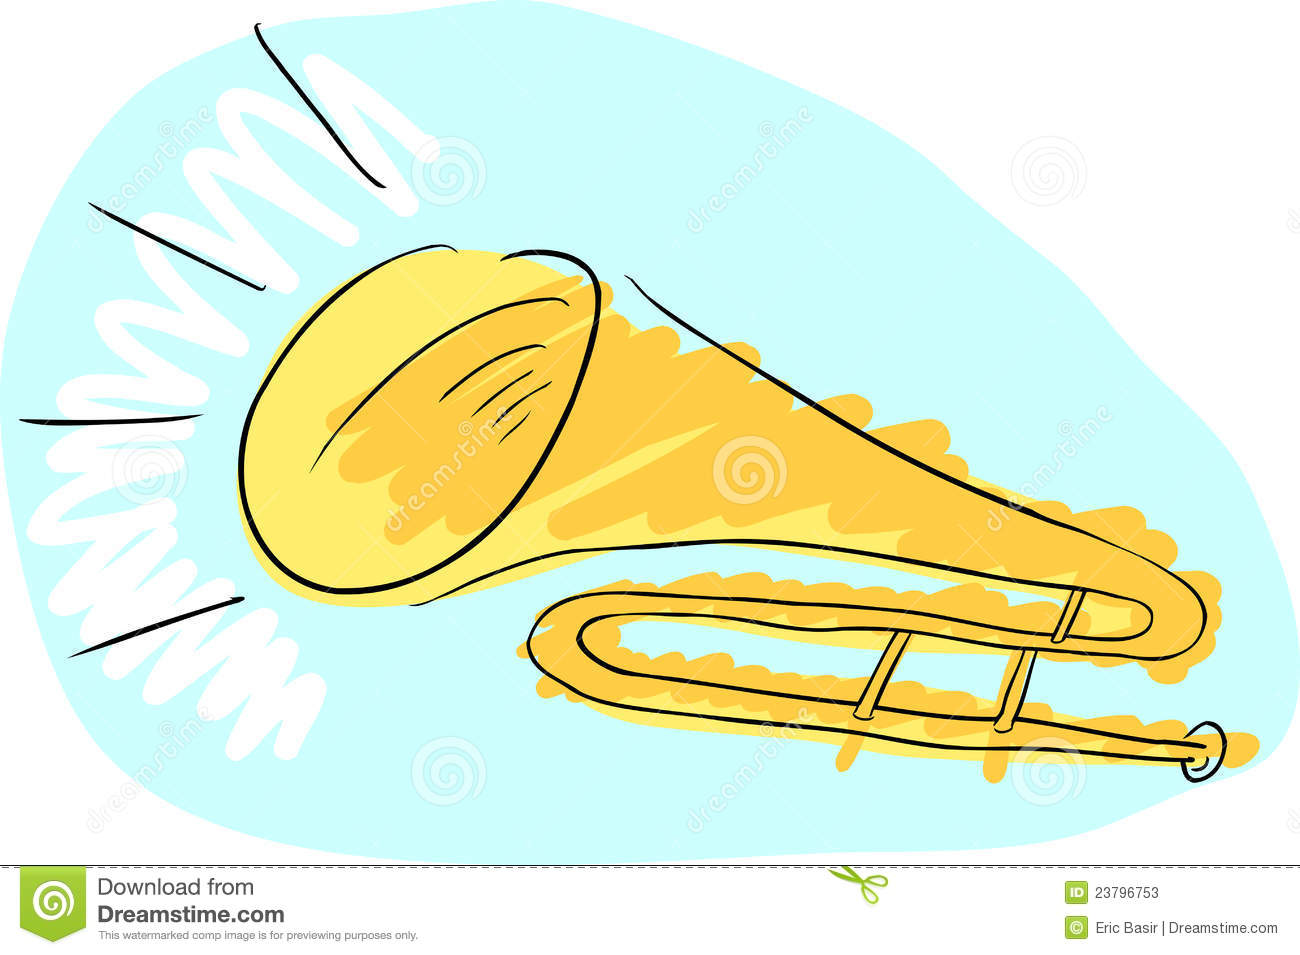 Doodle drawing of a trombone with sound coming from it.